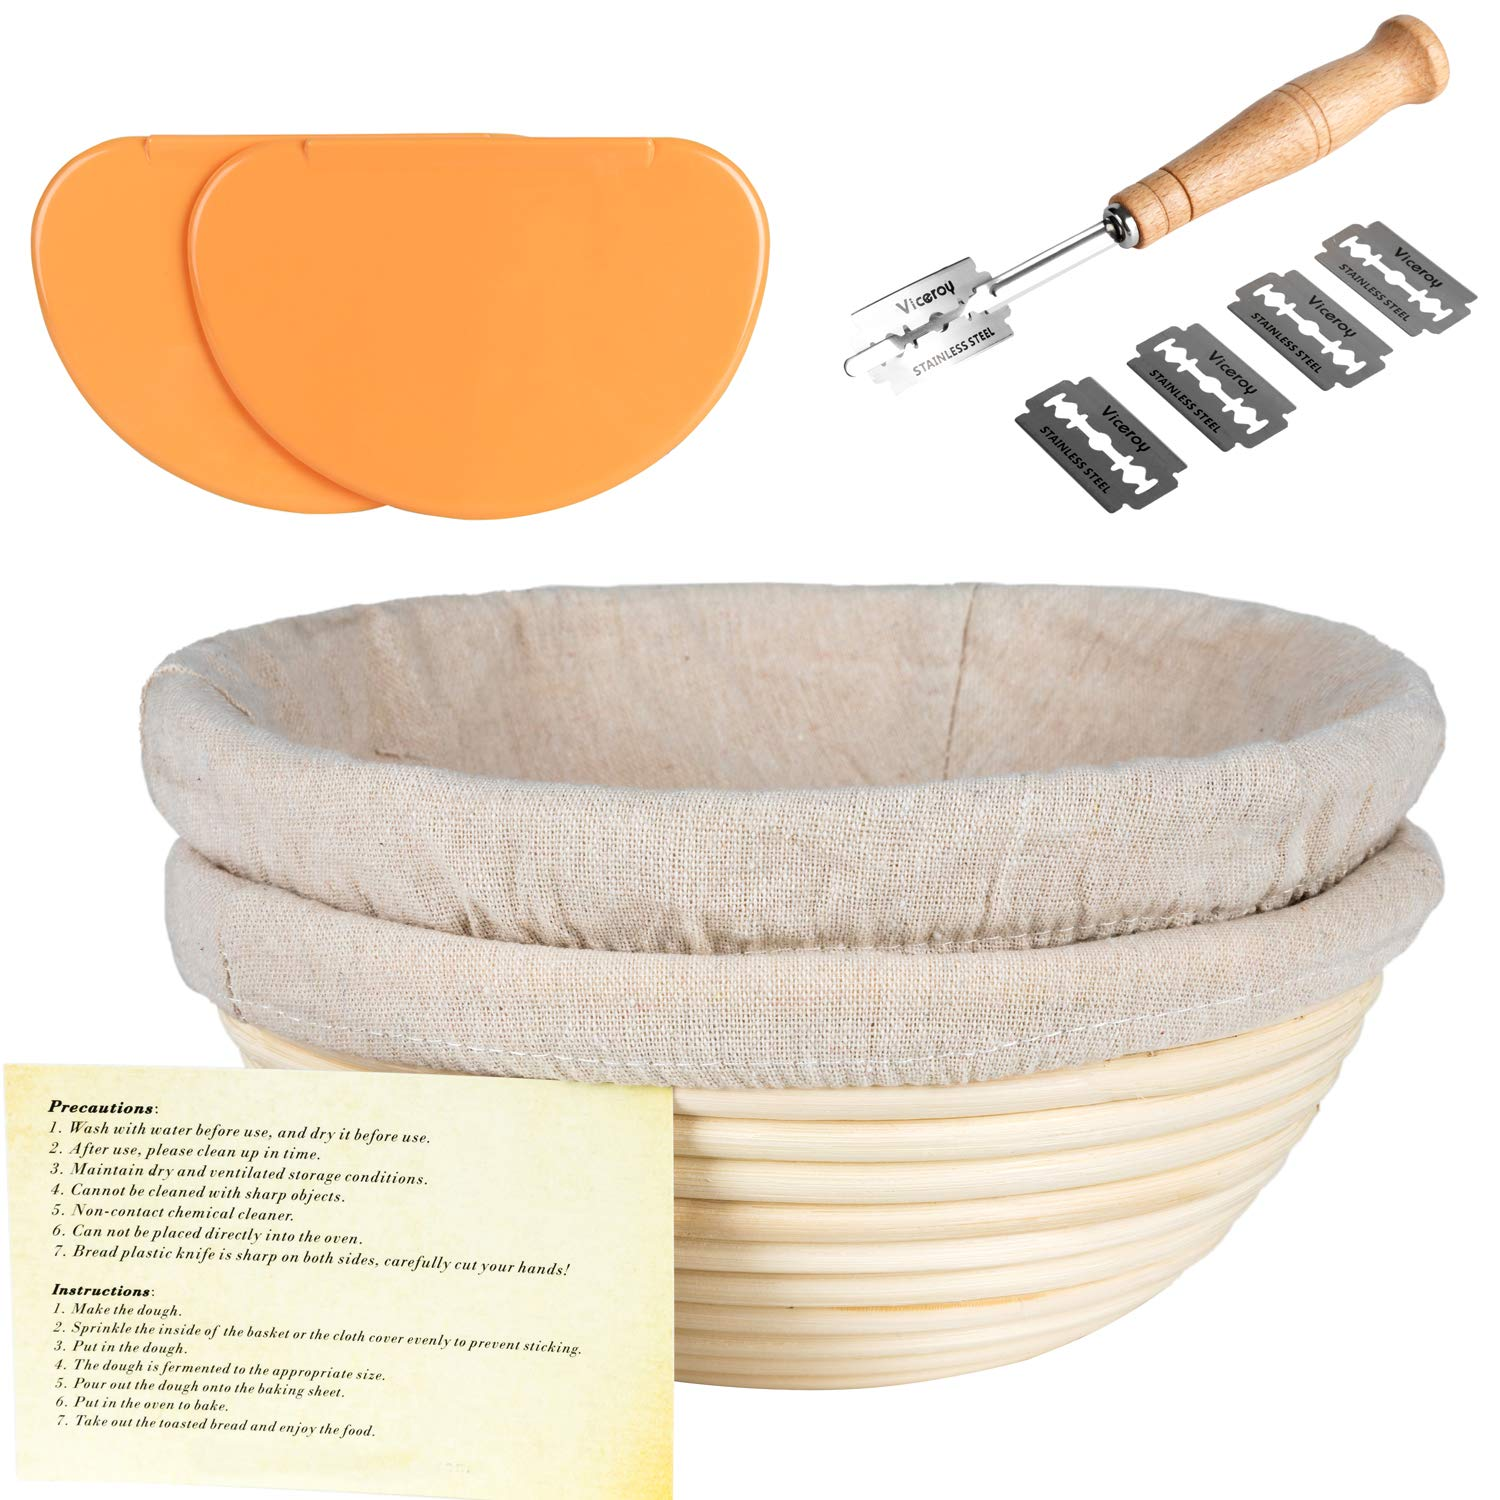 Jillmo 9 inch 2 Pack Bread Proofing Basket Set Sourdough Banneton Baking Proofed Kit With Bread Lame, Sough Scraper and Linen Liner Cloth